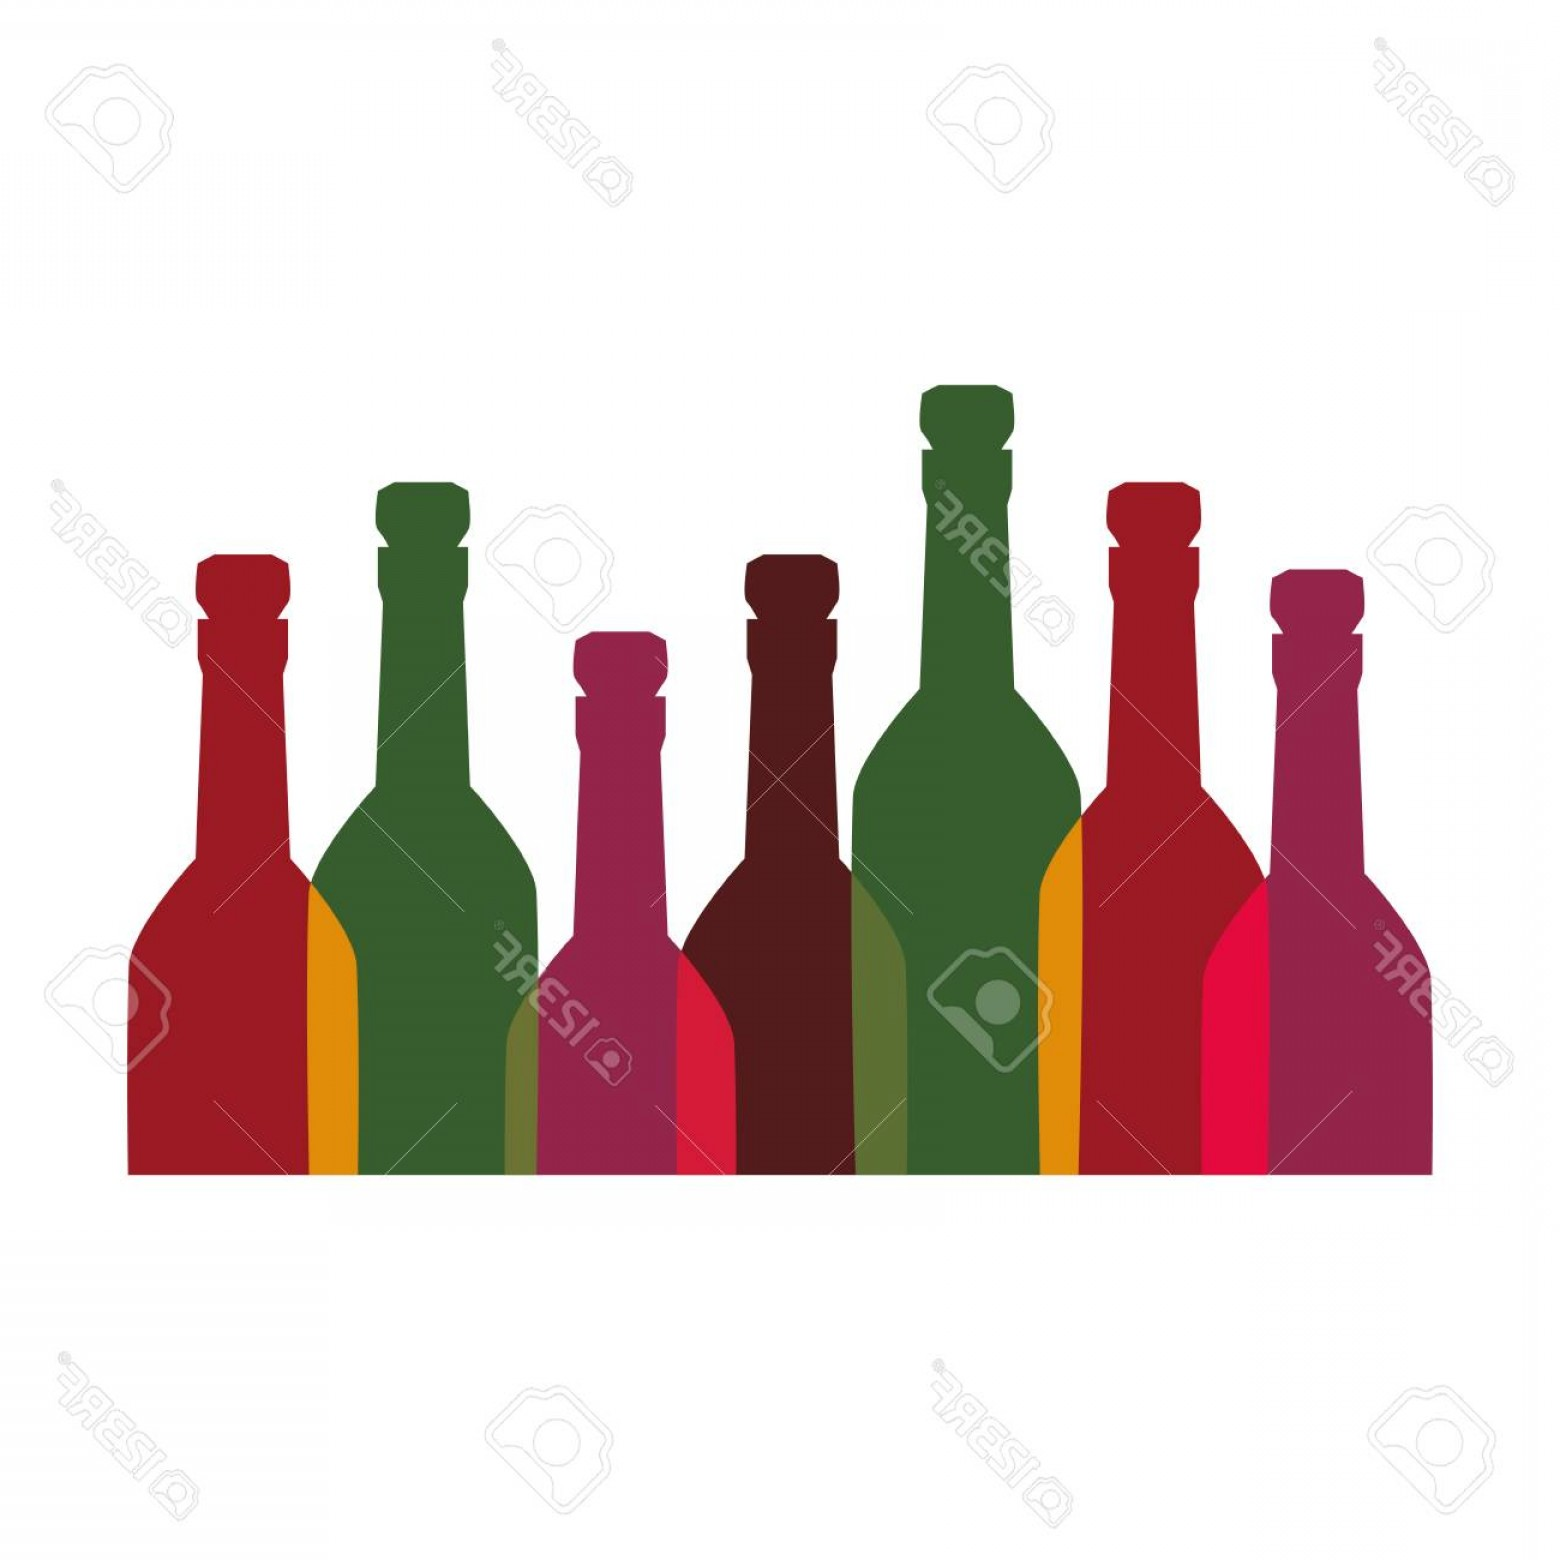 Booze Bottle Vector: Photocolor Background With Set Of Liquor Bottles Vector Illustration